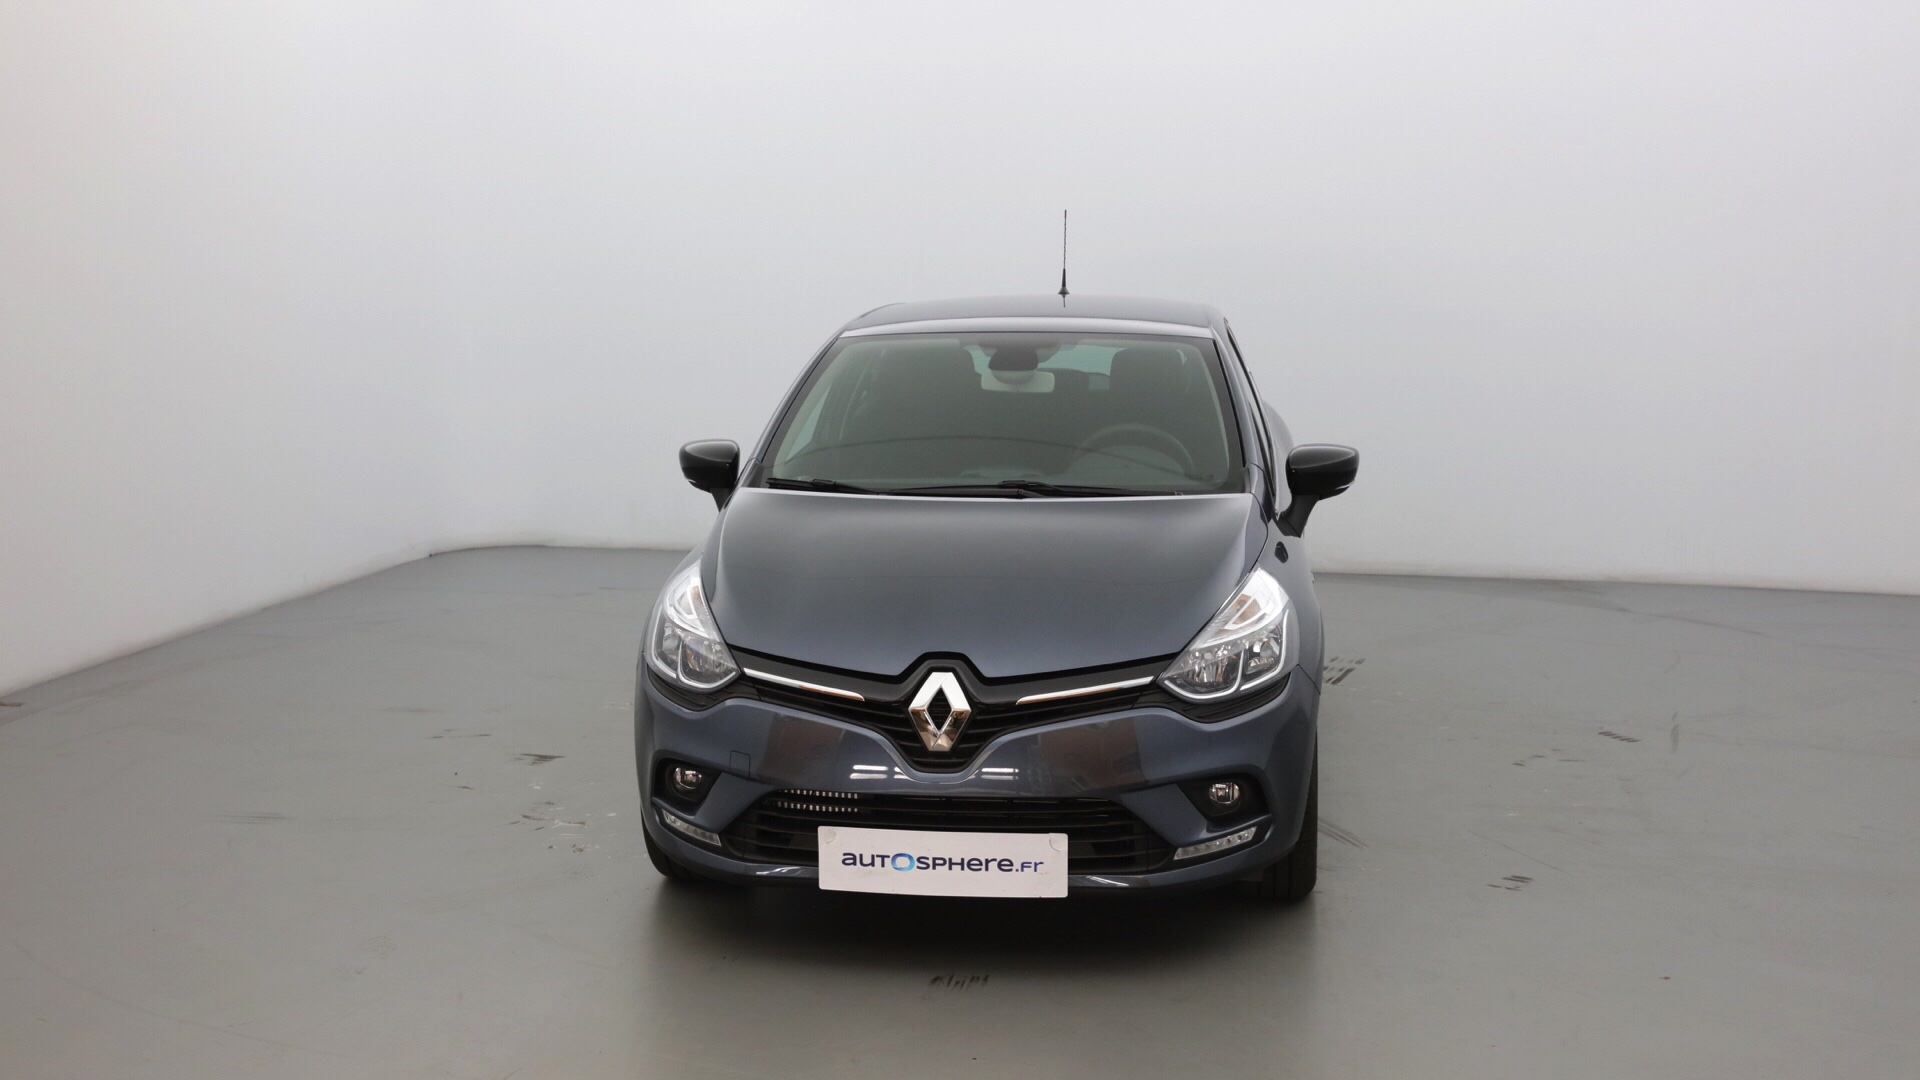 RENAULT CLIO 0.9 TCE 90CH LIMITED 5P - Miniature 2